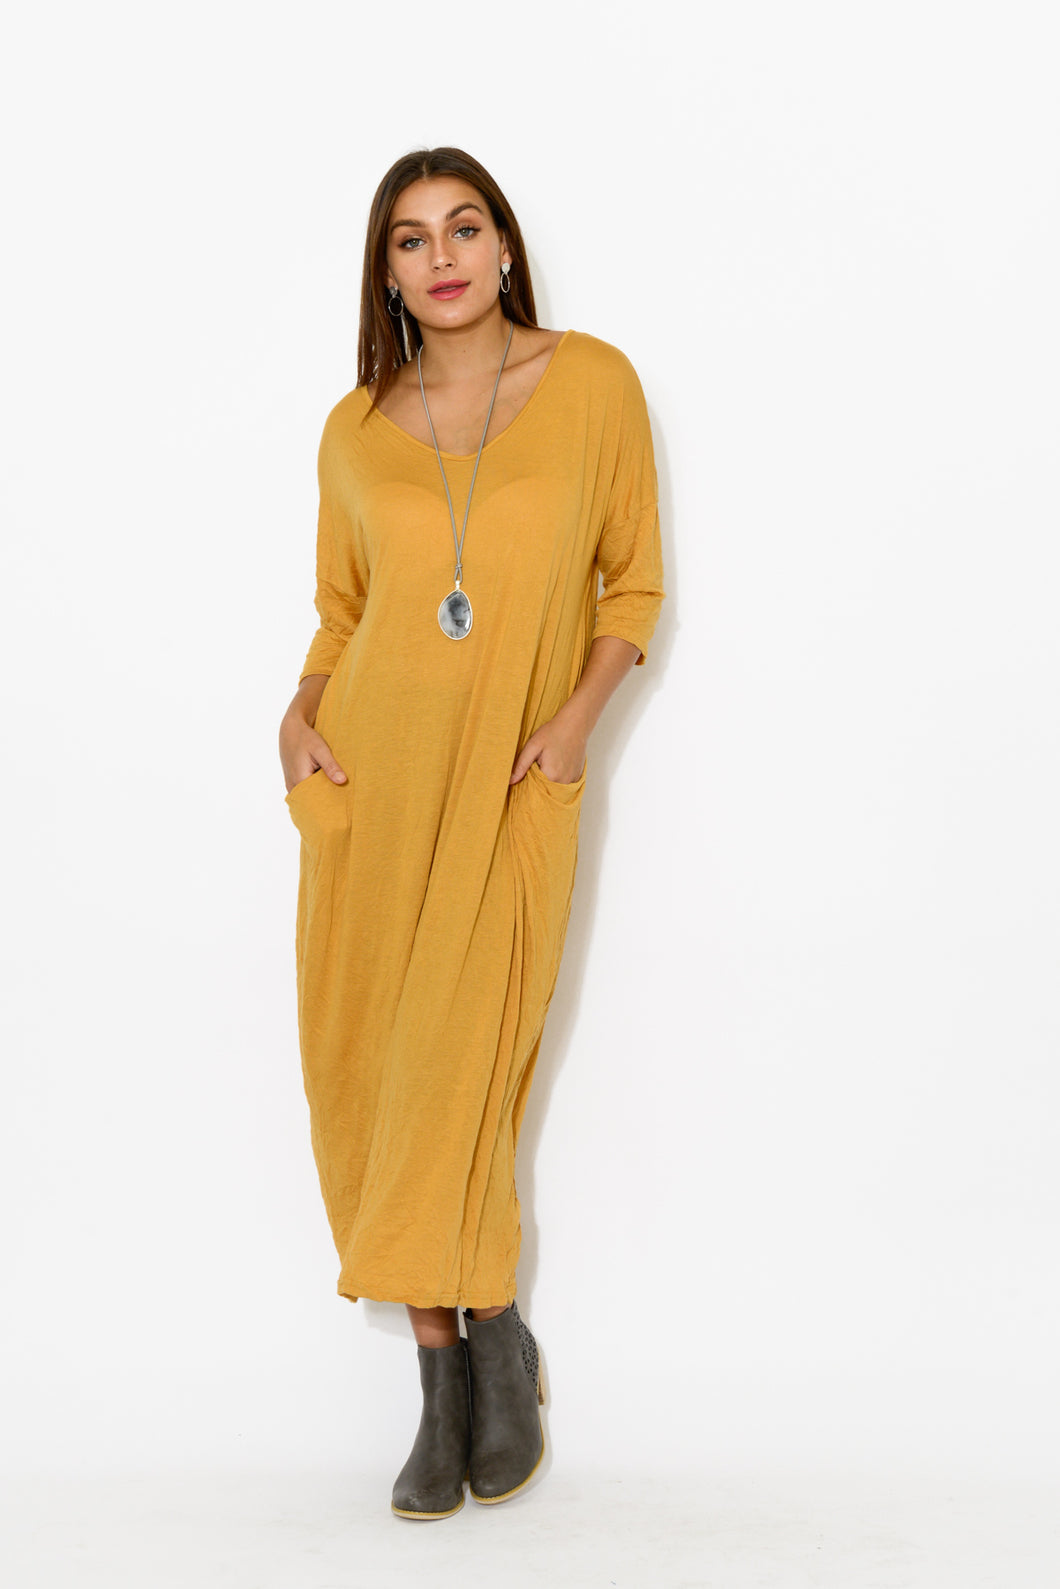 Mustard Sleeved Pocket Cotton Dress - Blue Bungalow